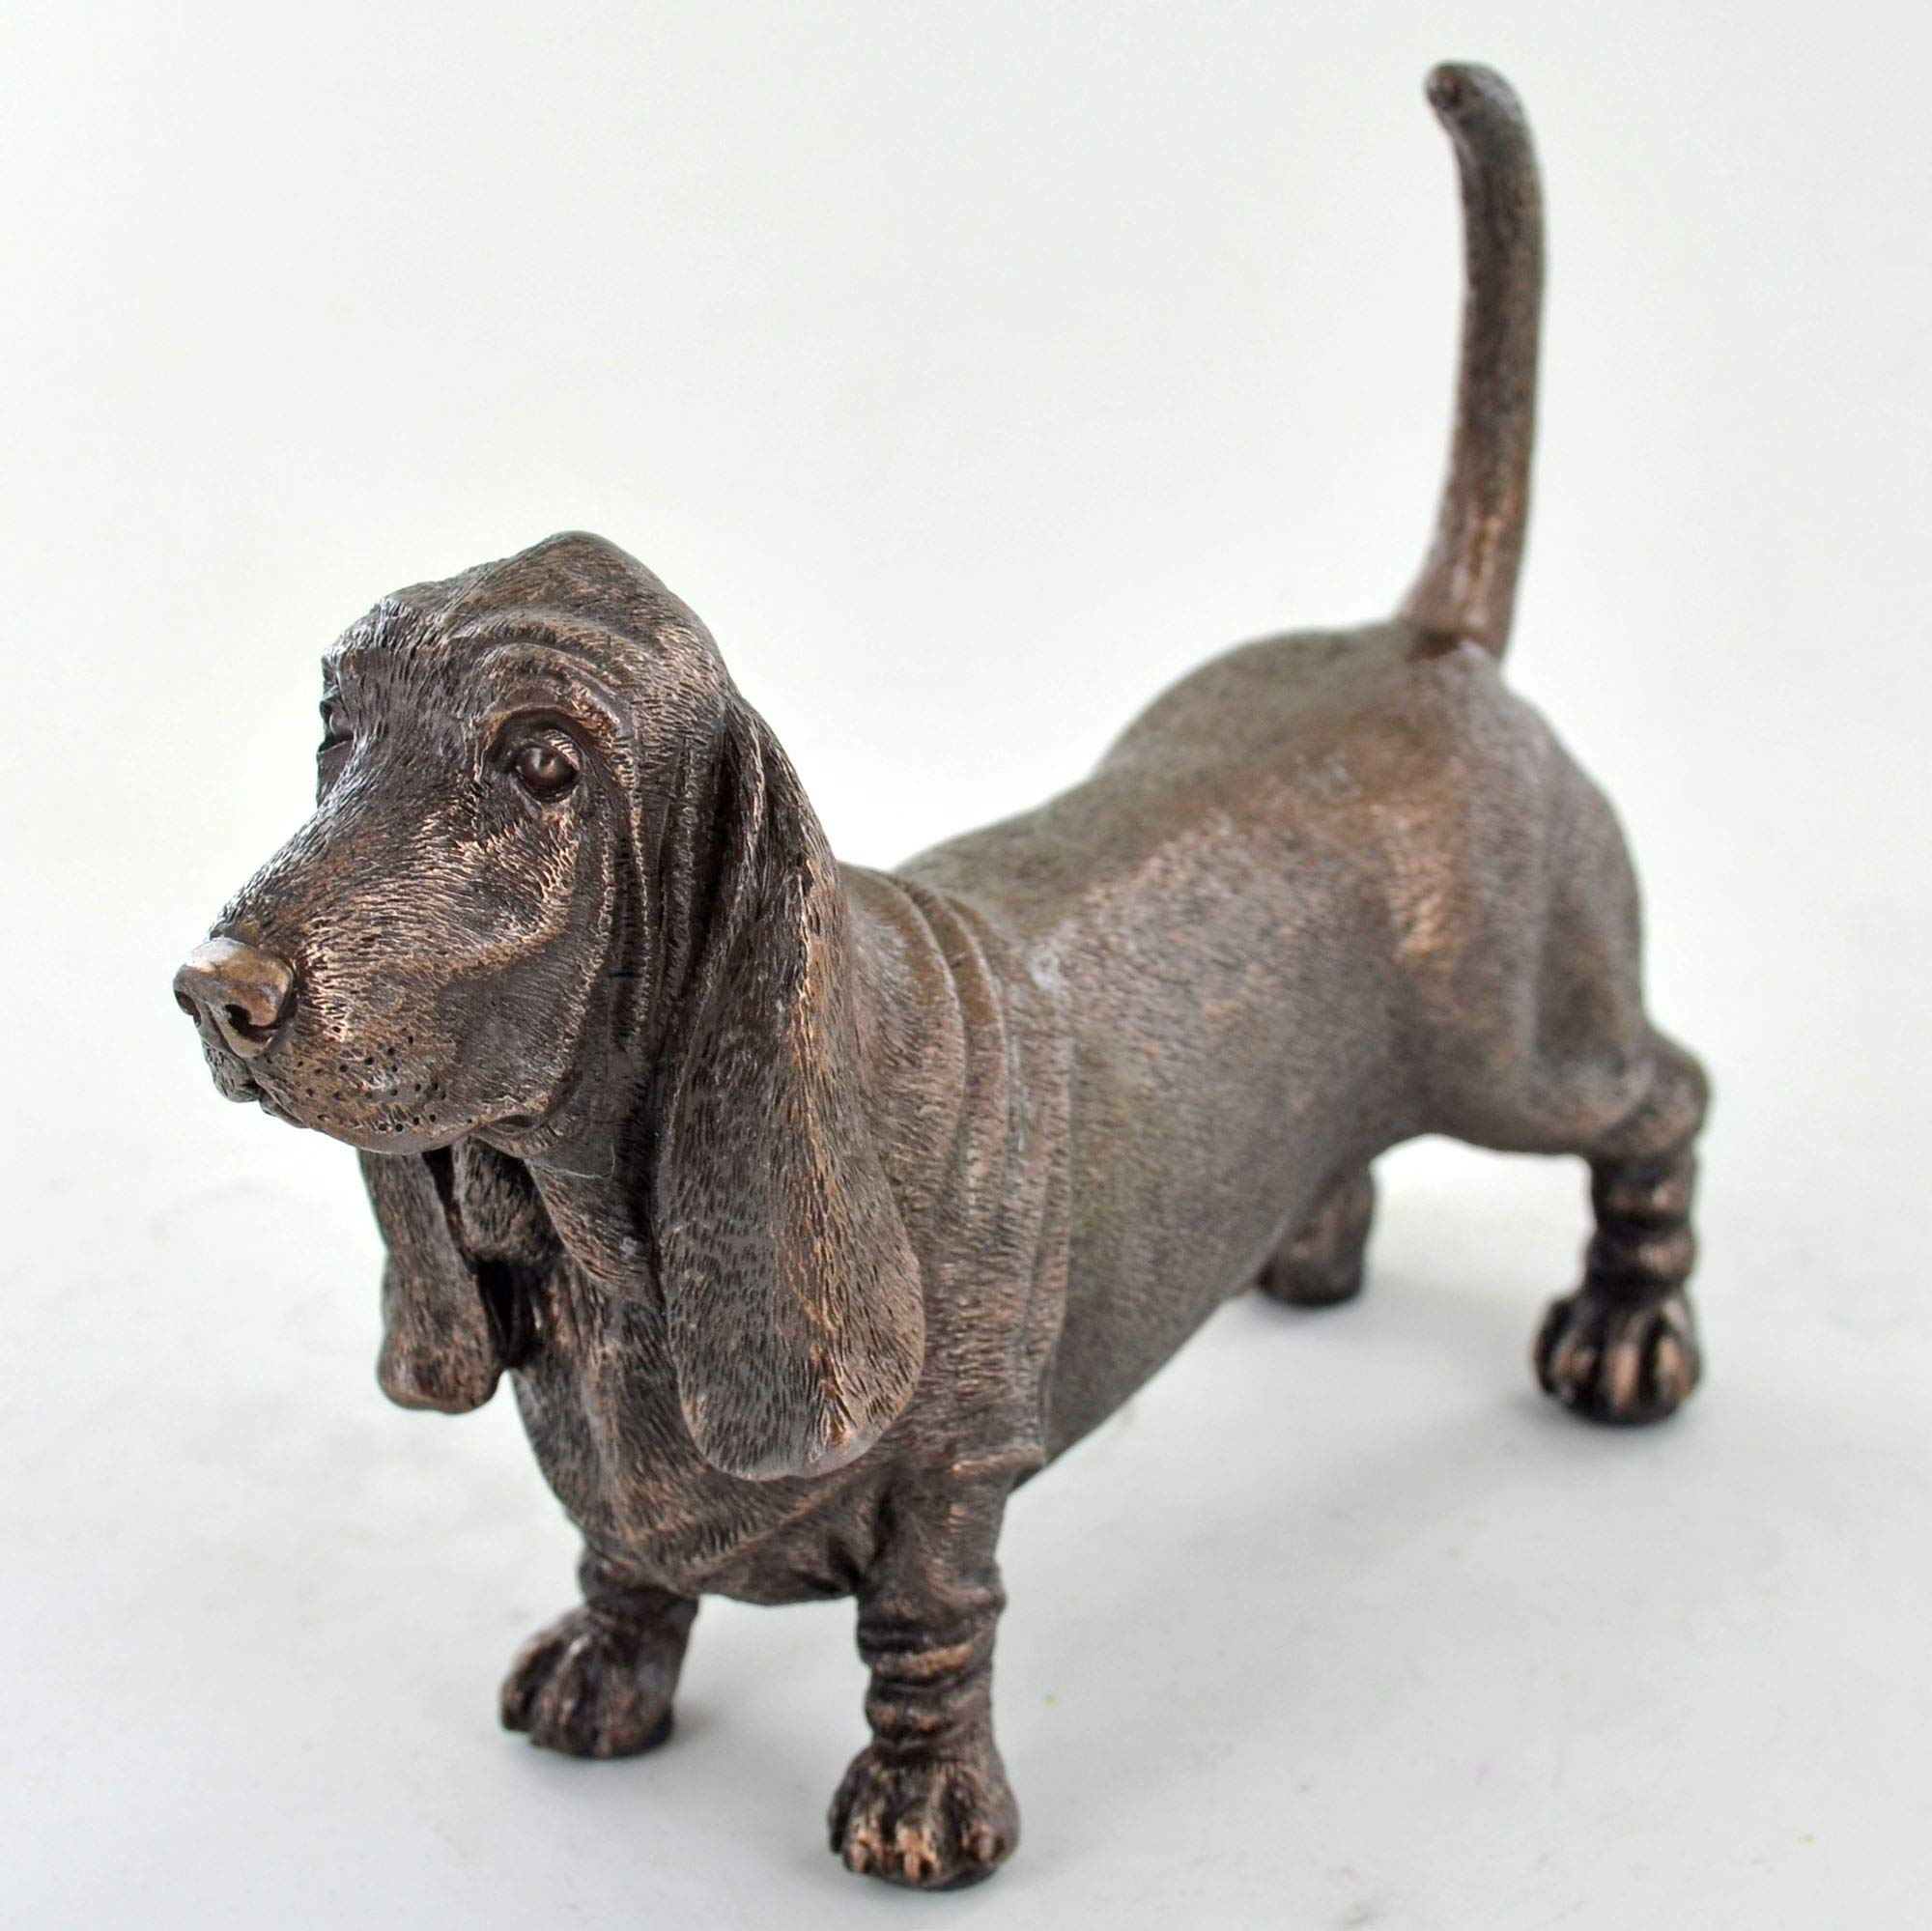 Bassett Hound Dog Sculpture Cold Cast Bronze Statue Ornament Figurine Home Decor Pets Gift Idea H12cm